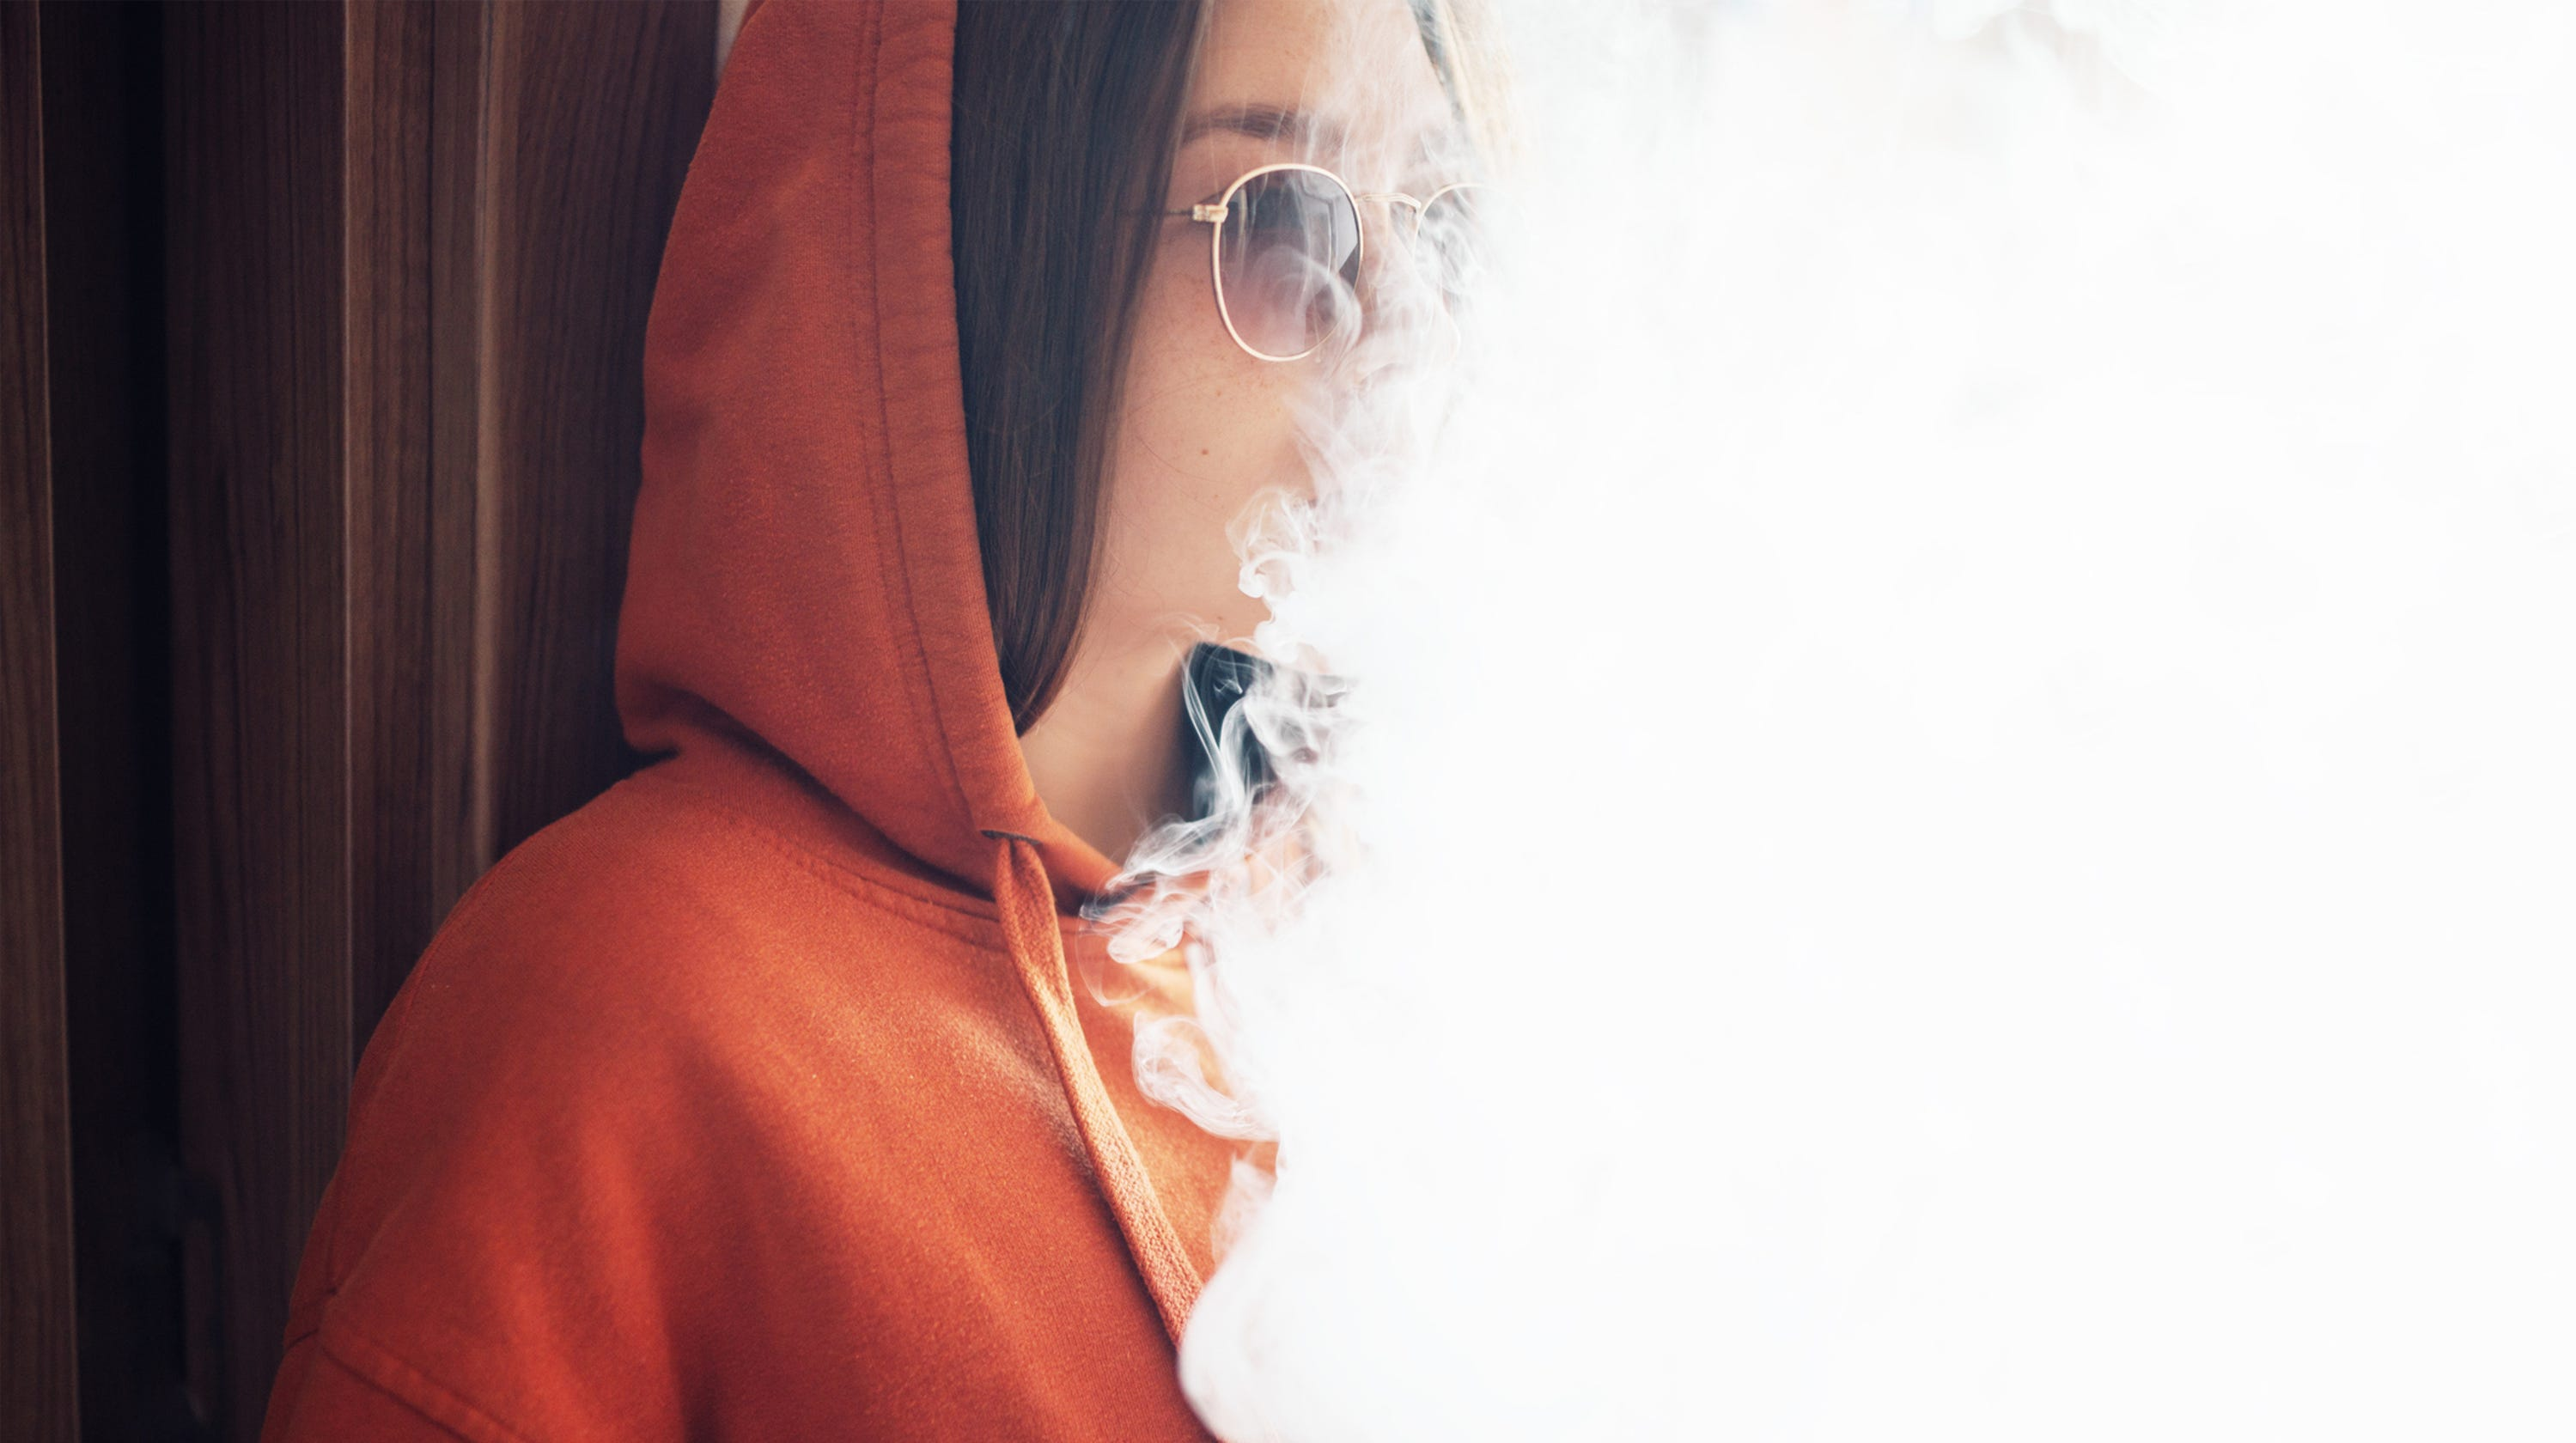 Parents beware: Here are 5 types of e-cigarettes your teen might be hiding